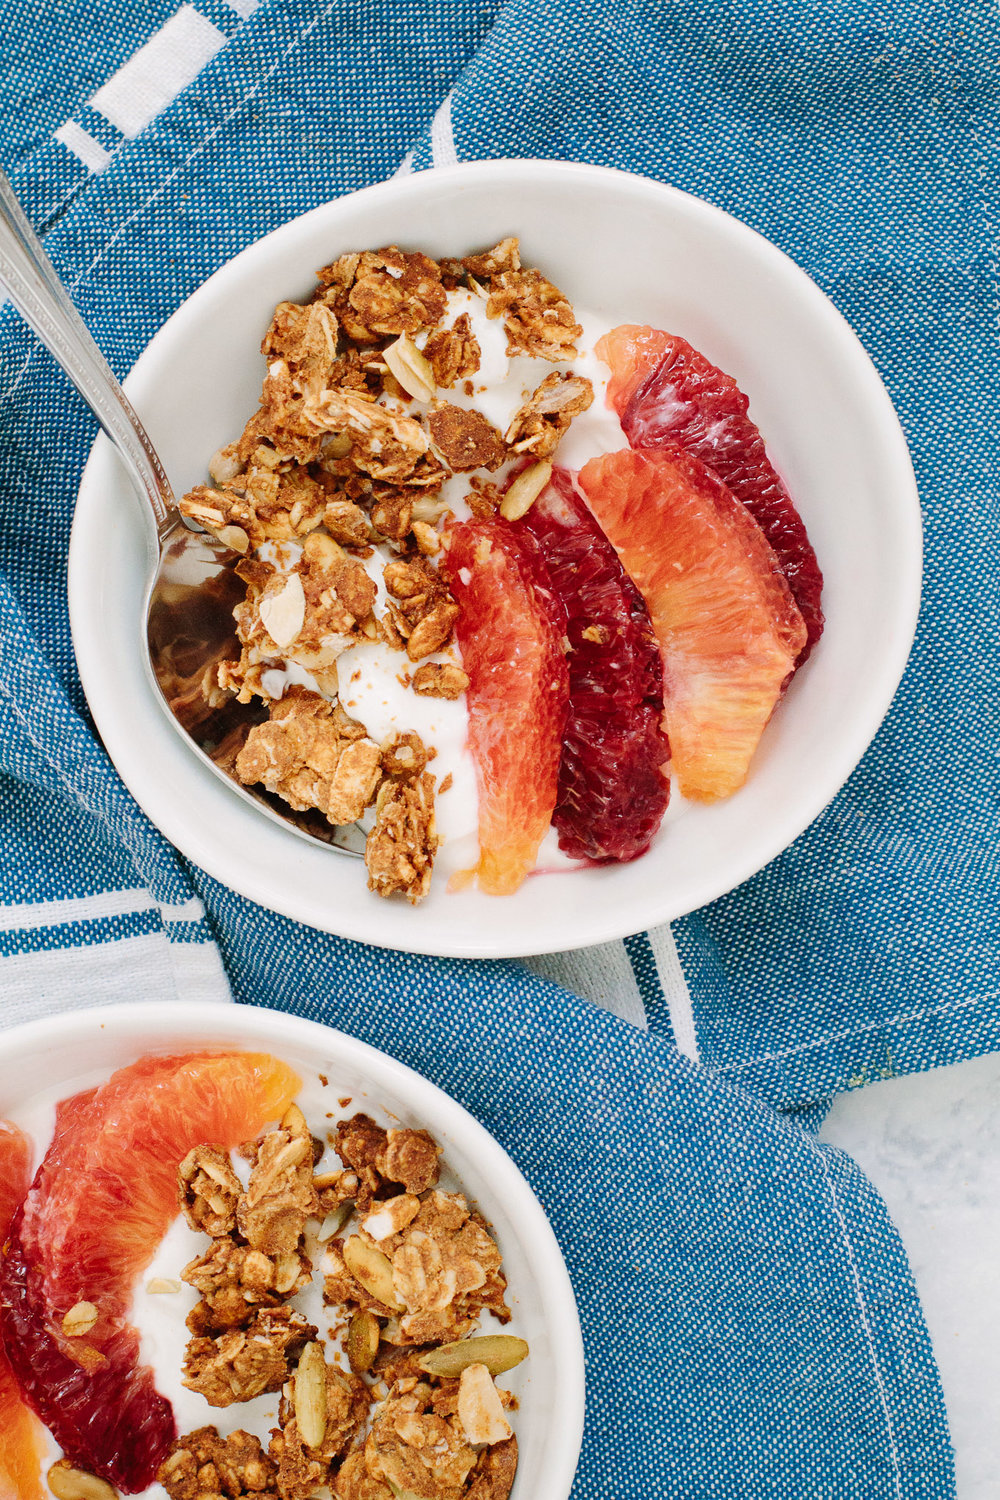 Yogurt, Blood Orange, and Extra Clumpy Granola Bowls